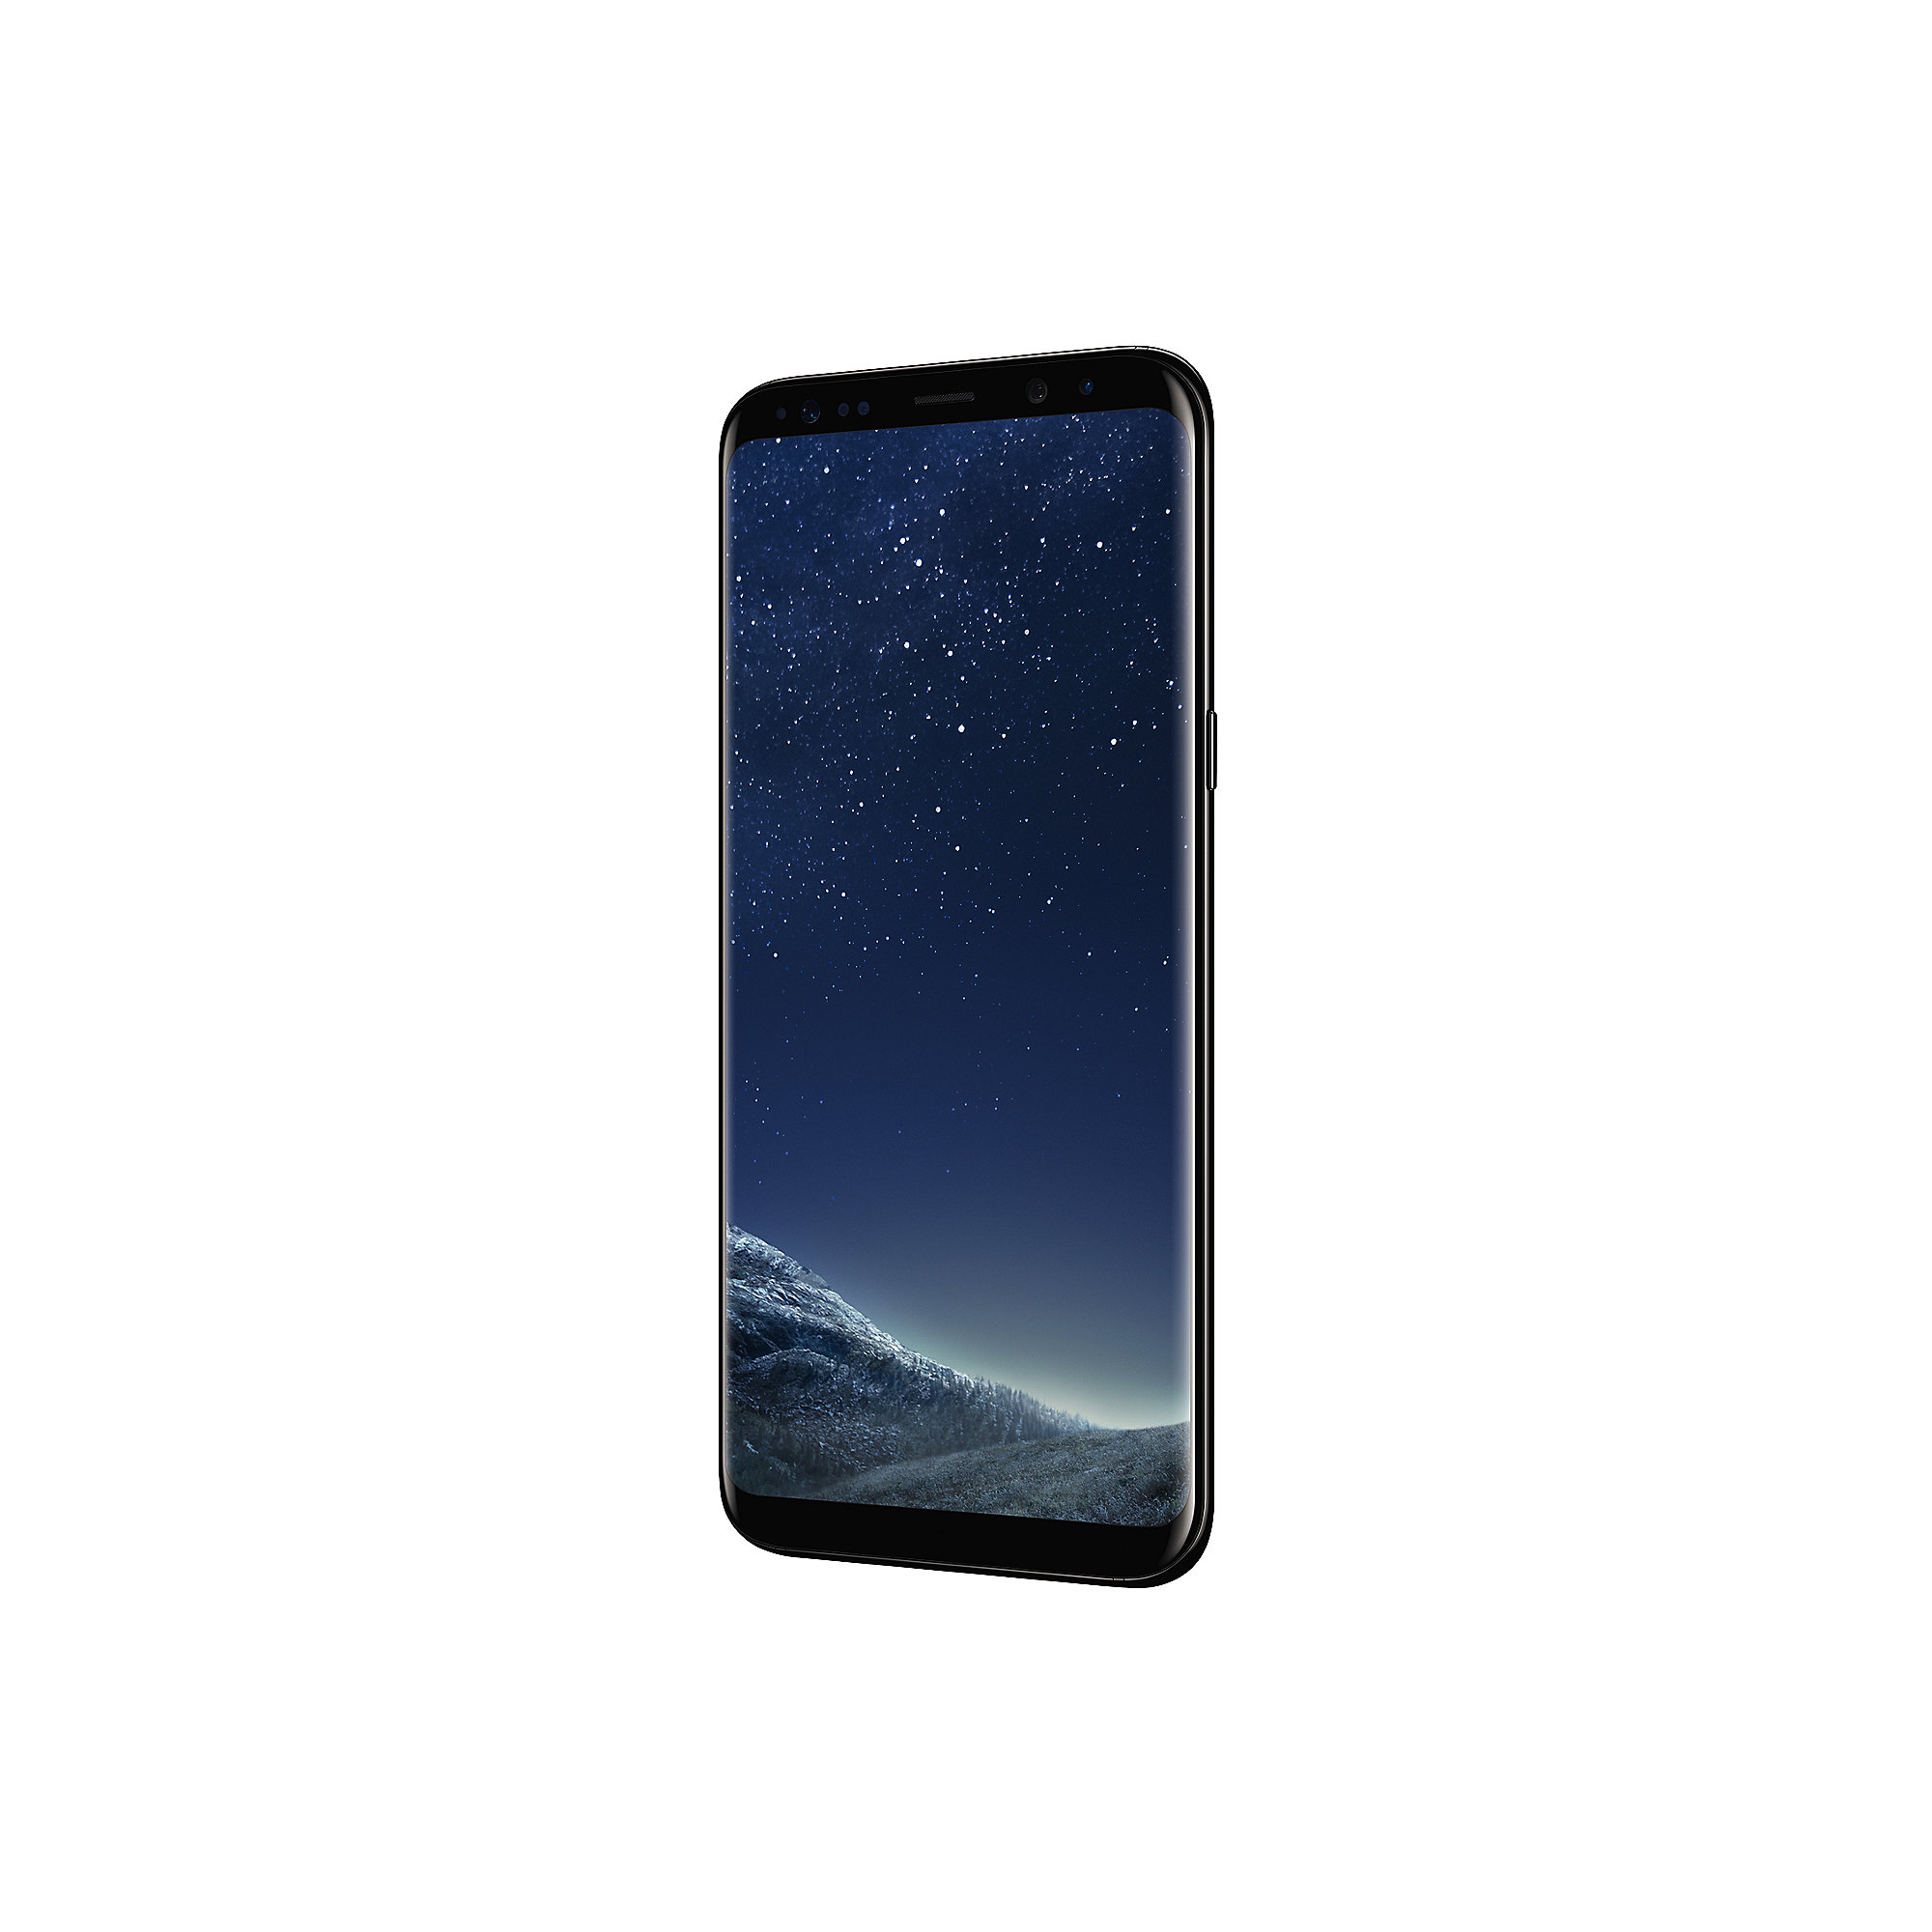 Samsung GALAXY S8+ midnight black G955F 64 GB Android Smartphone